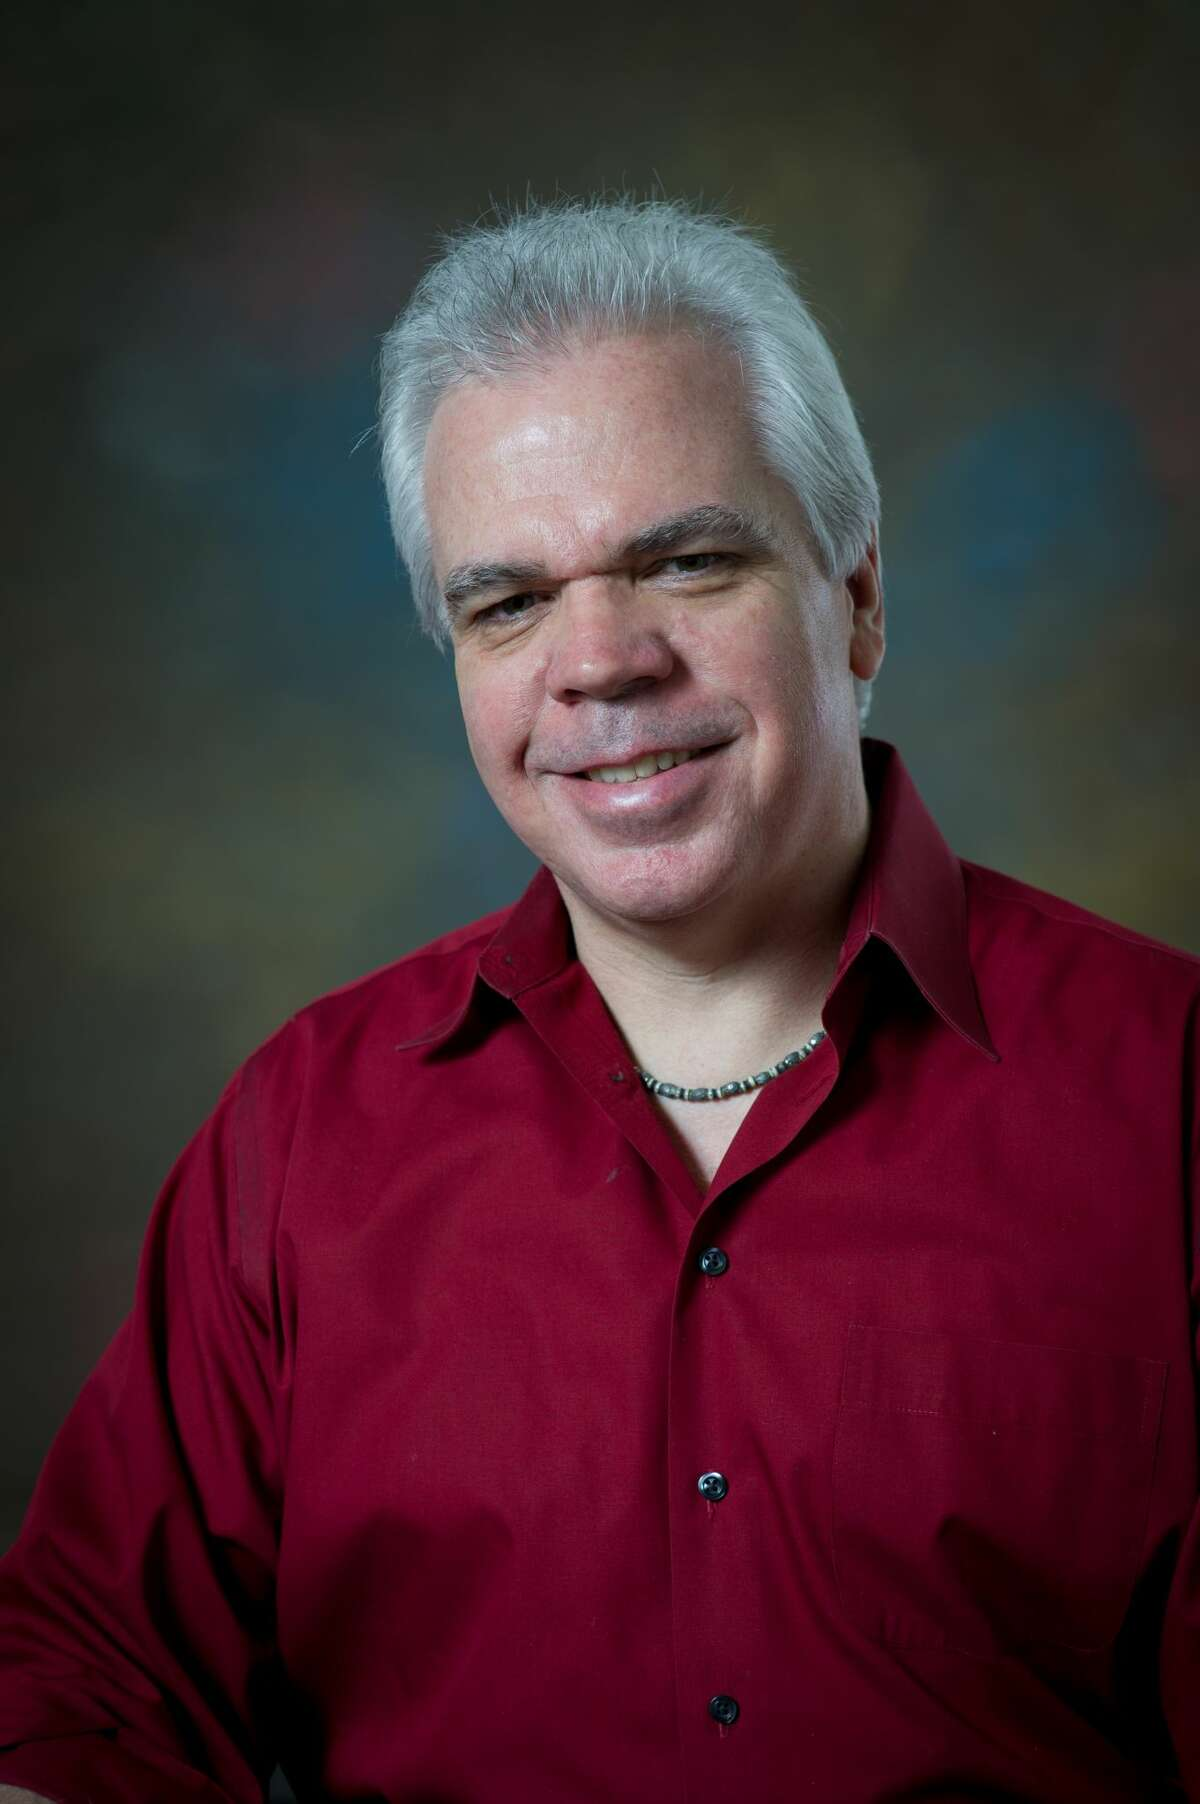 WAMC's Brian Shields announced his retirement on Dec. 16, 2019, ending the newsman's 30-year tenure at the Capital Region public radio station.